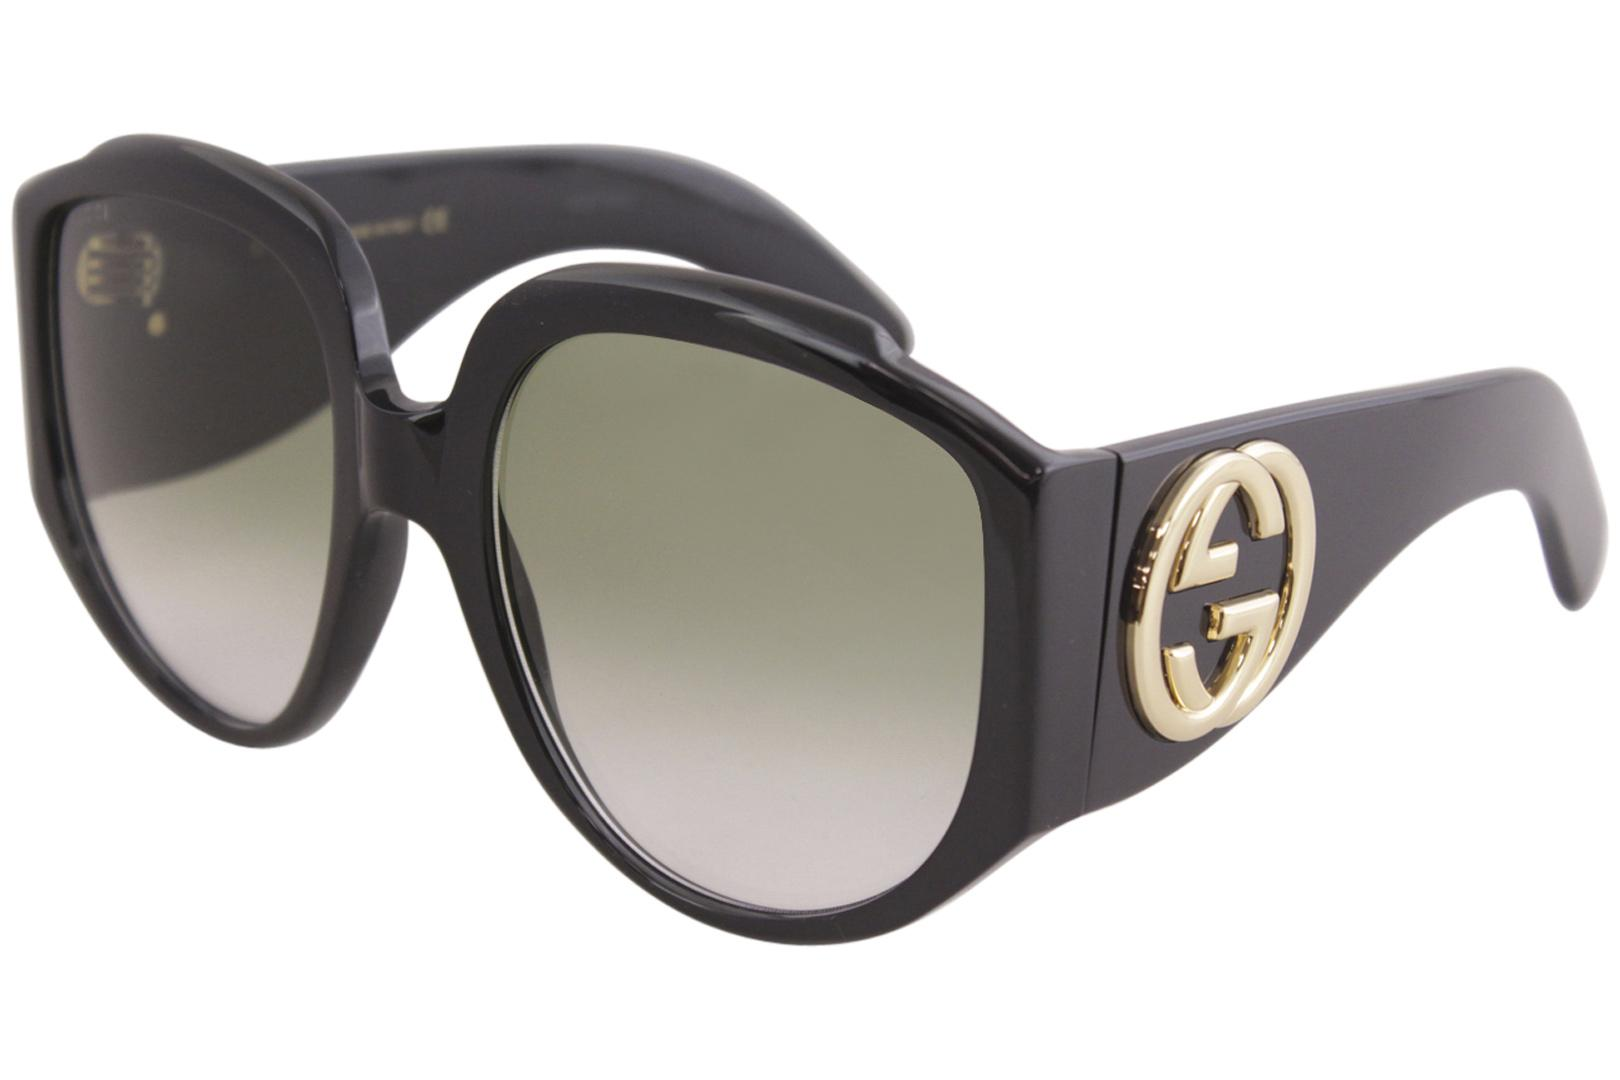 ee3a24846456 Gucci Women's GG0151S GG/0151/S Fashion Butterfly Sunglasses